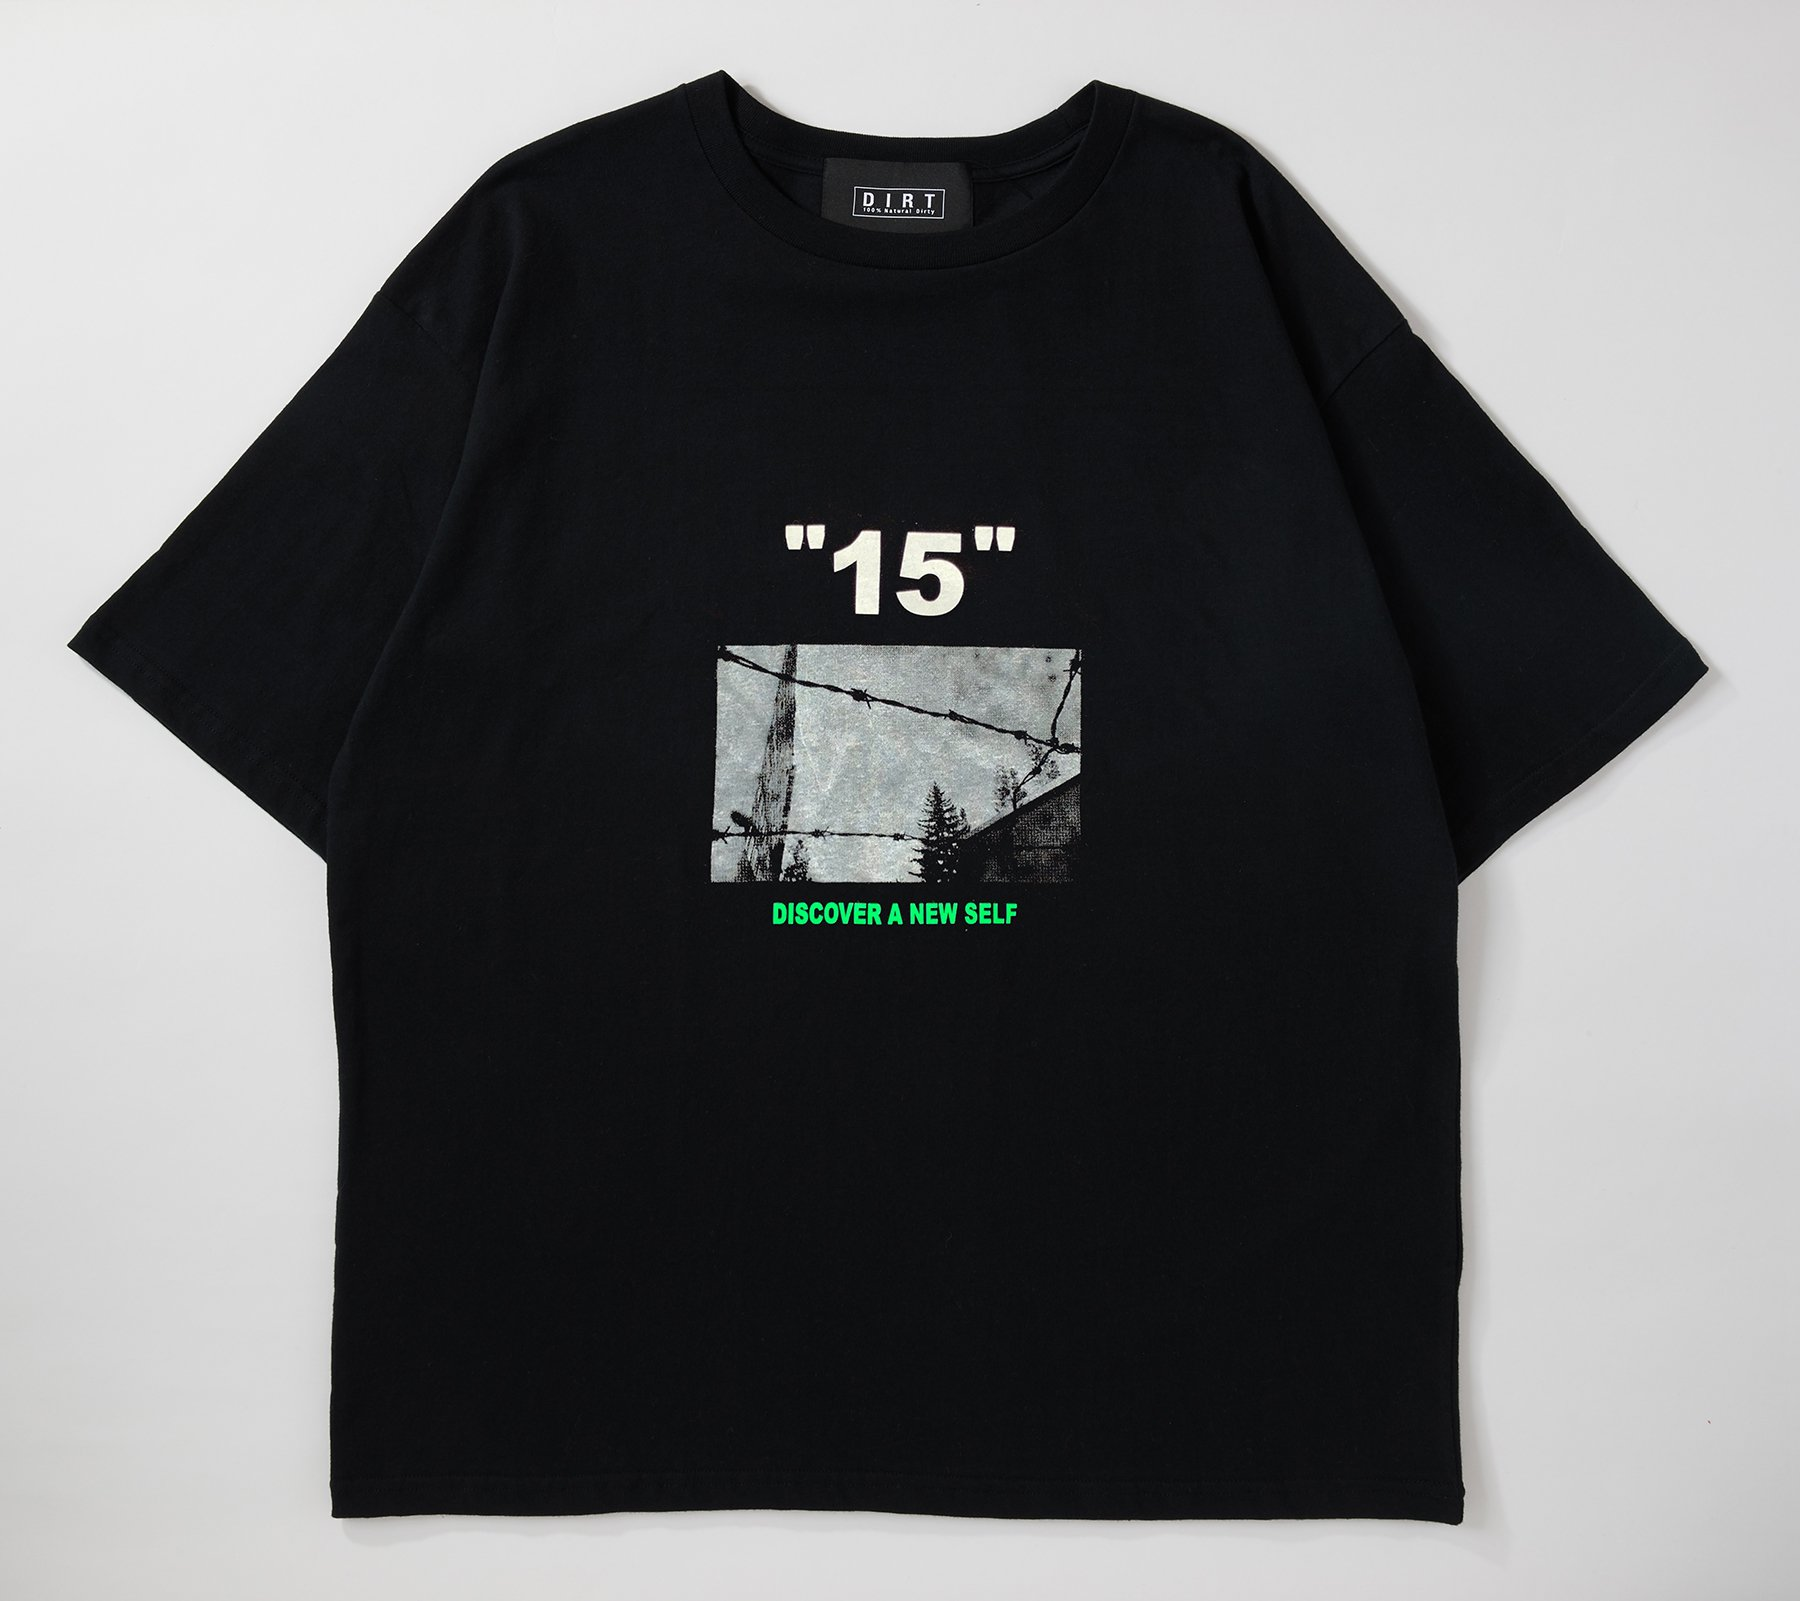 <img class='new_mark_img1' src='//img.shop-pro.jp/img/new/icons14.gif' style='border:none;display:inline;margin:0px;padding:0px;width:auto;' />2019 fall collection T-shirt 01